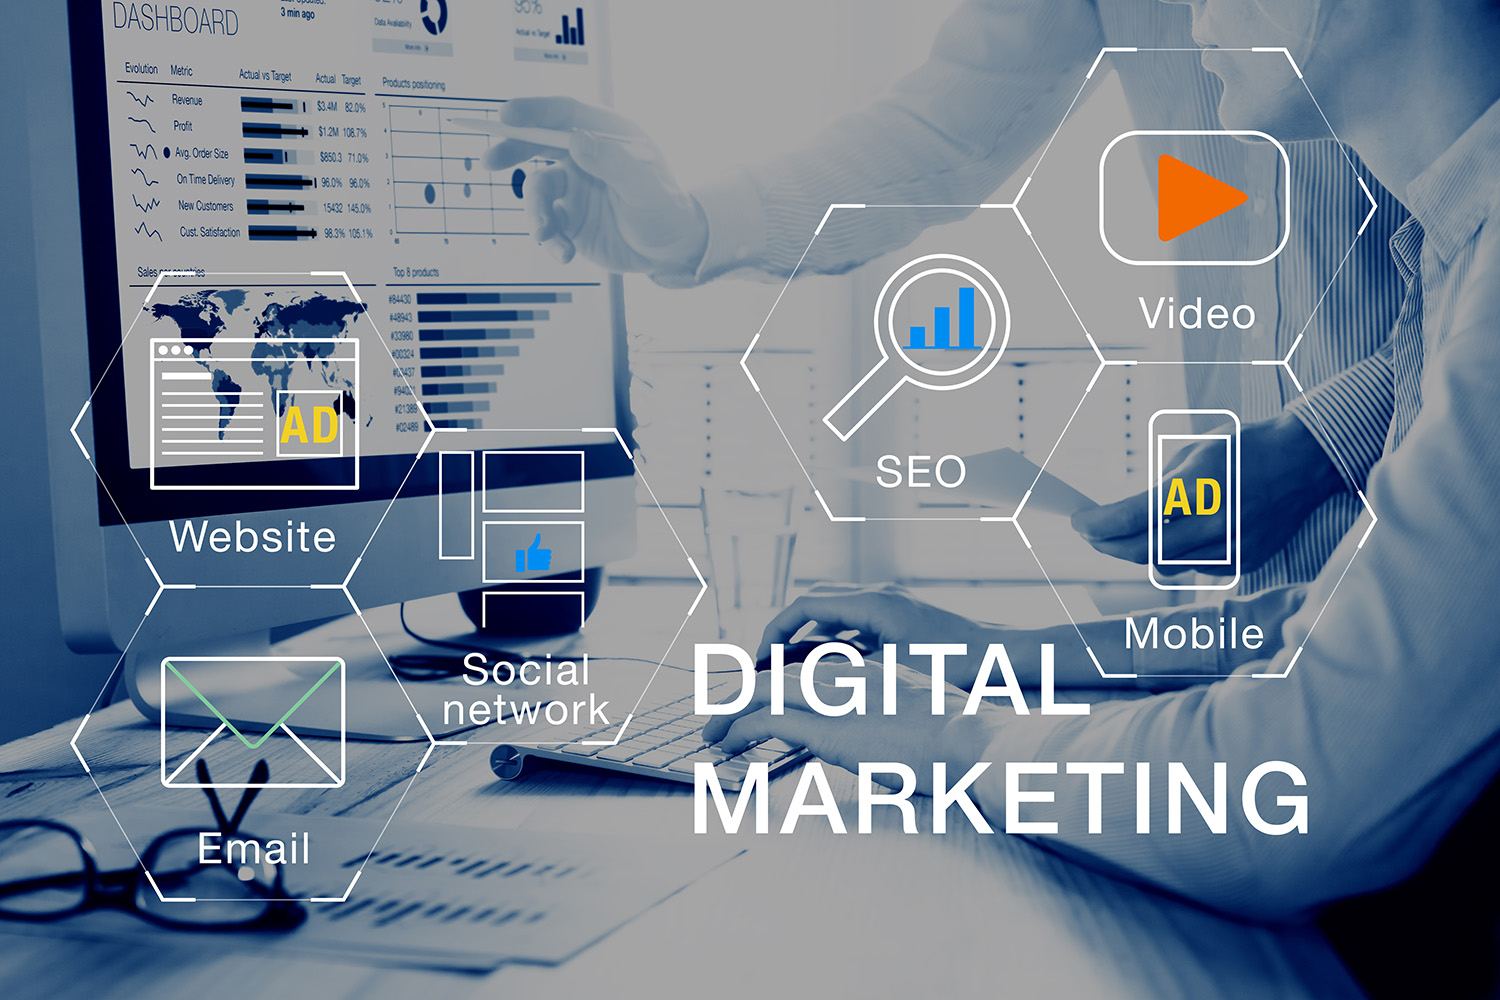 Digital Marketing Company in Montrose, CO and Anthem, AZ